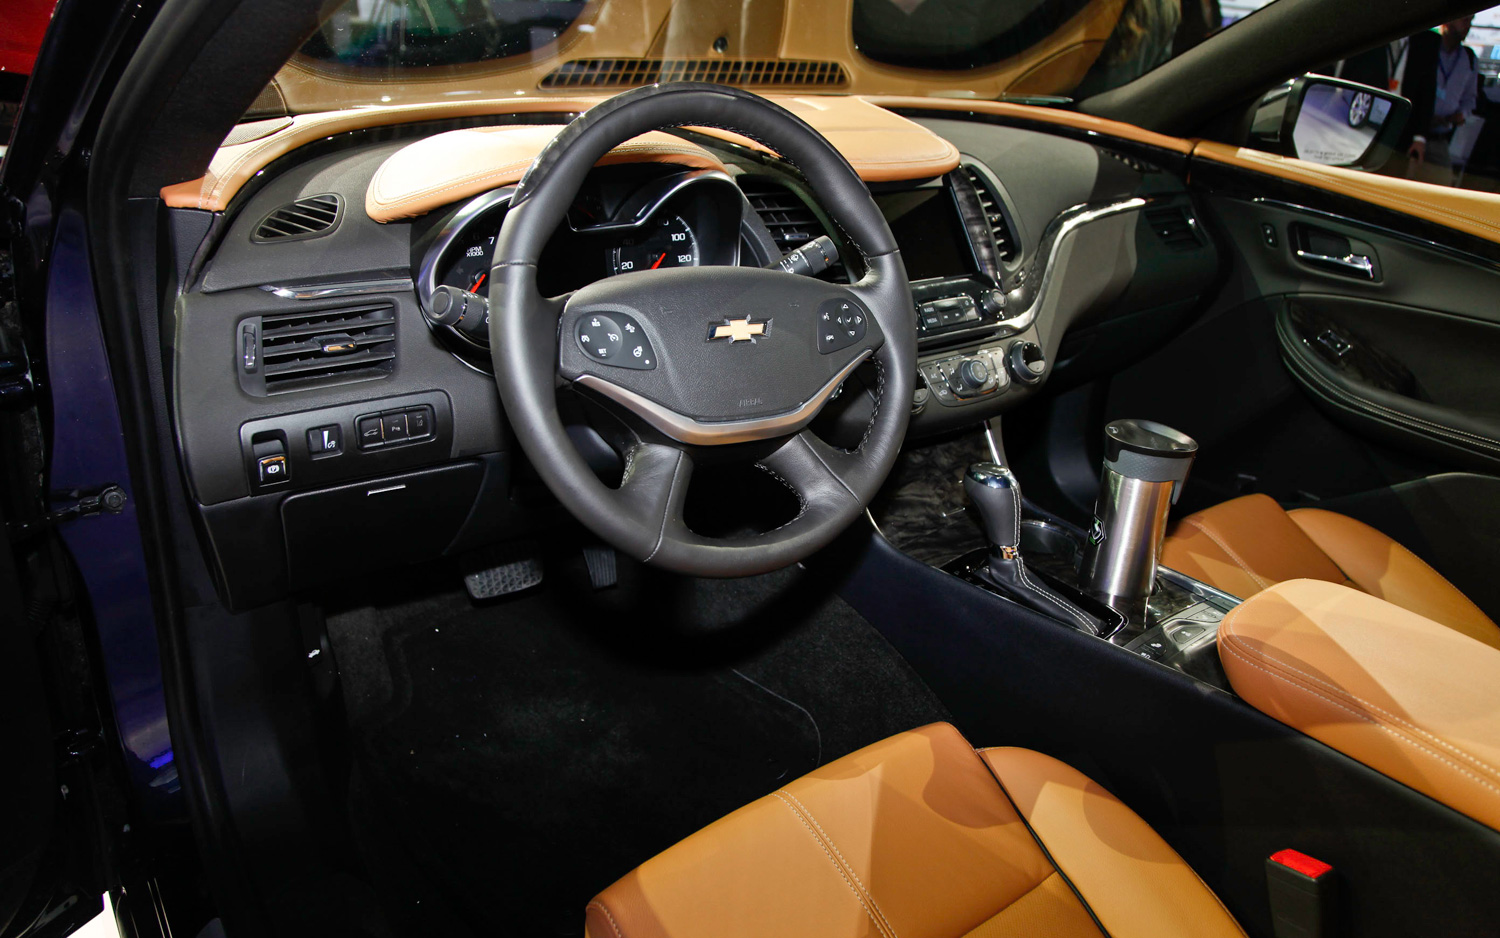 2014 chevrolet impala information and photos momentcar chevrolet impala 2014 4 chevrolet impala 2014 4 voltagebd Image collections